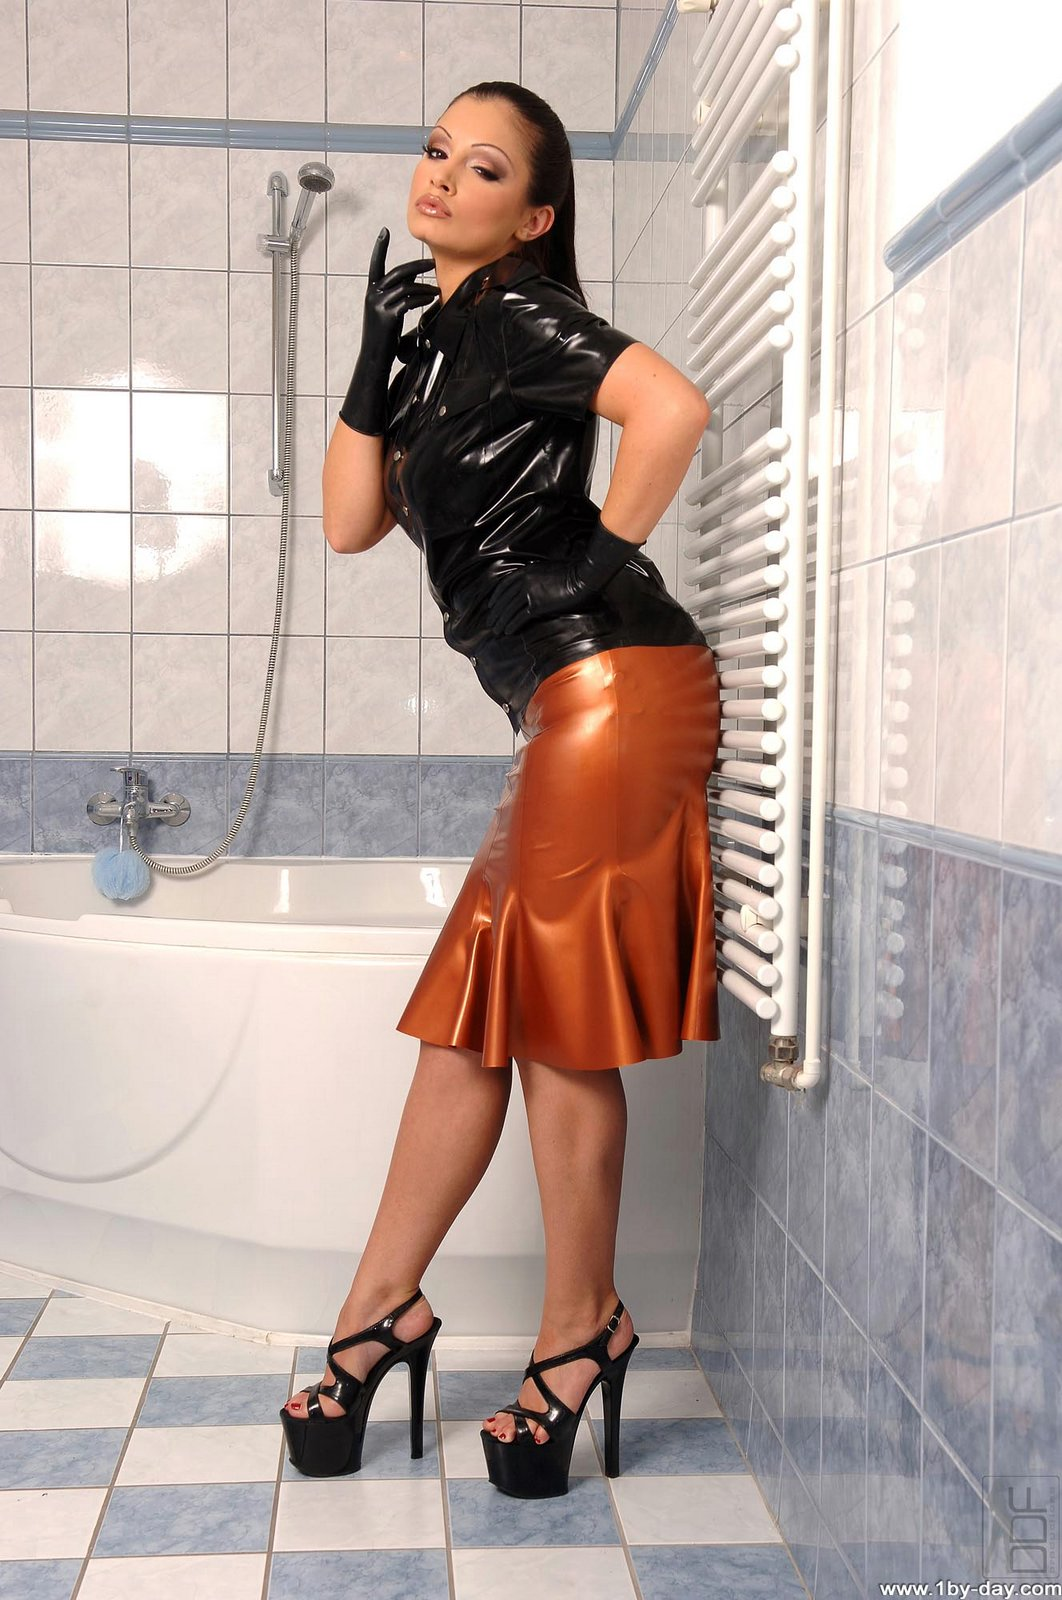 Aria Giovanni In Sexy Latex Outfit Takes A Hot Shower - My -2829